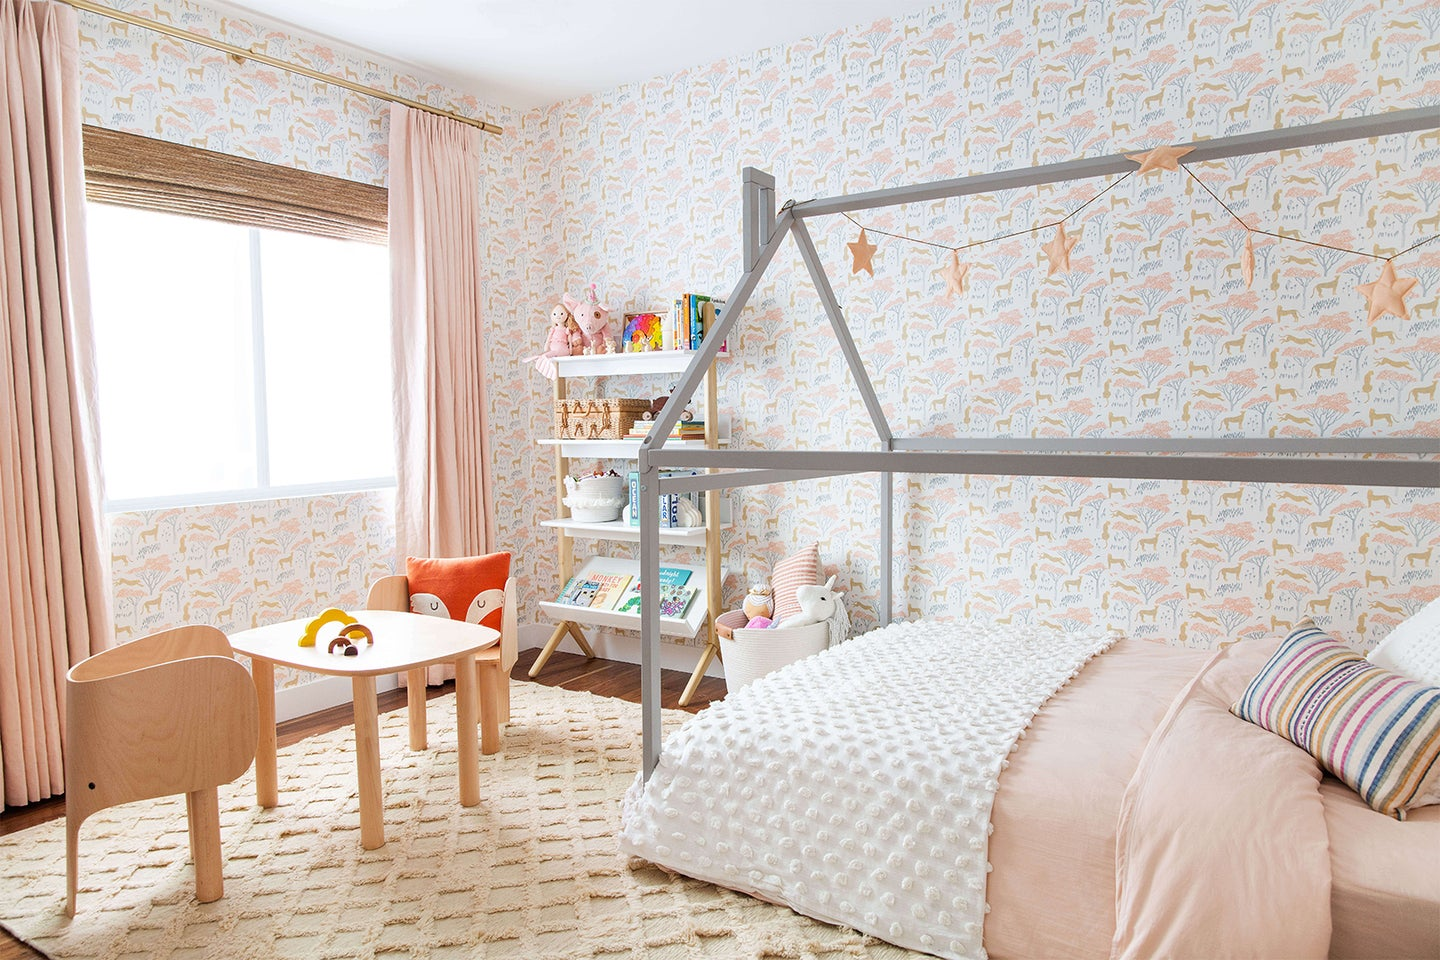 Kids room with house-shaped bed and Hygge & West wallpaper